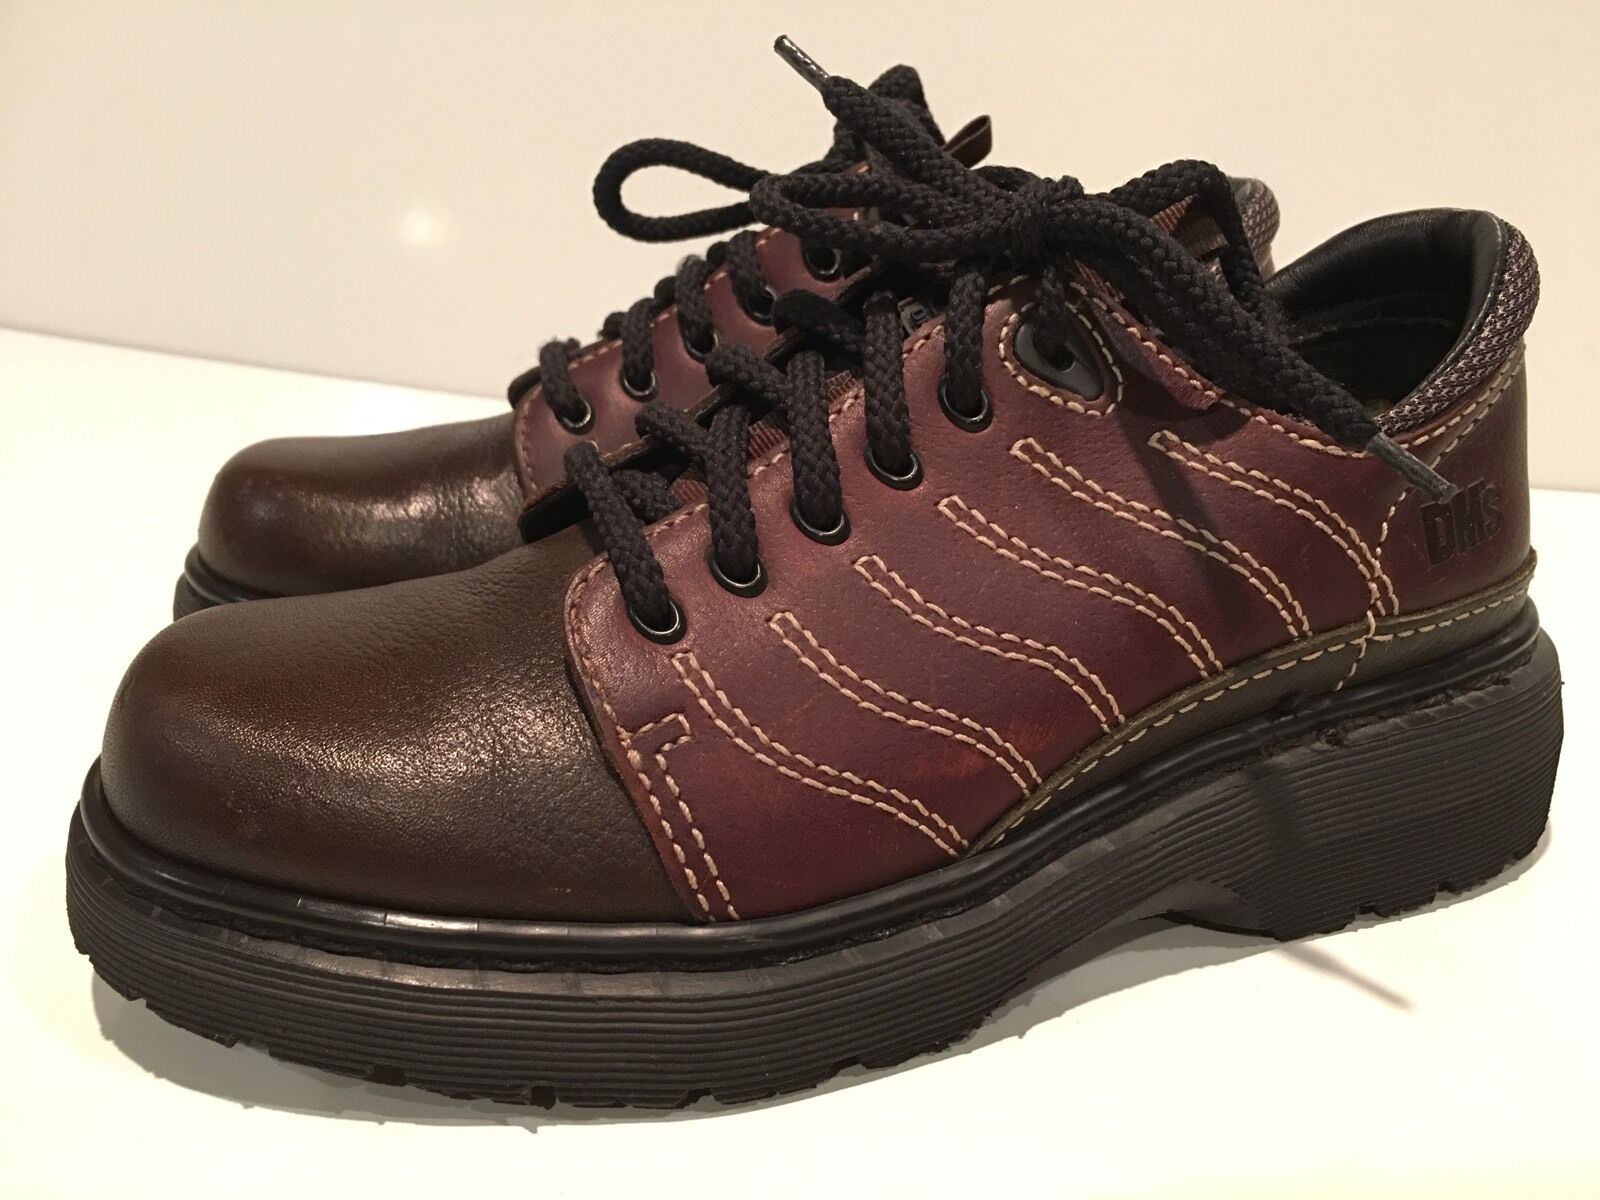 Dr. Martens Air Cushioned Sole Leather Oxfords shoes Size Men's 7 Wo's 8